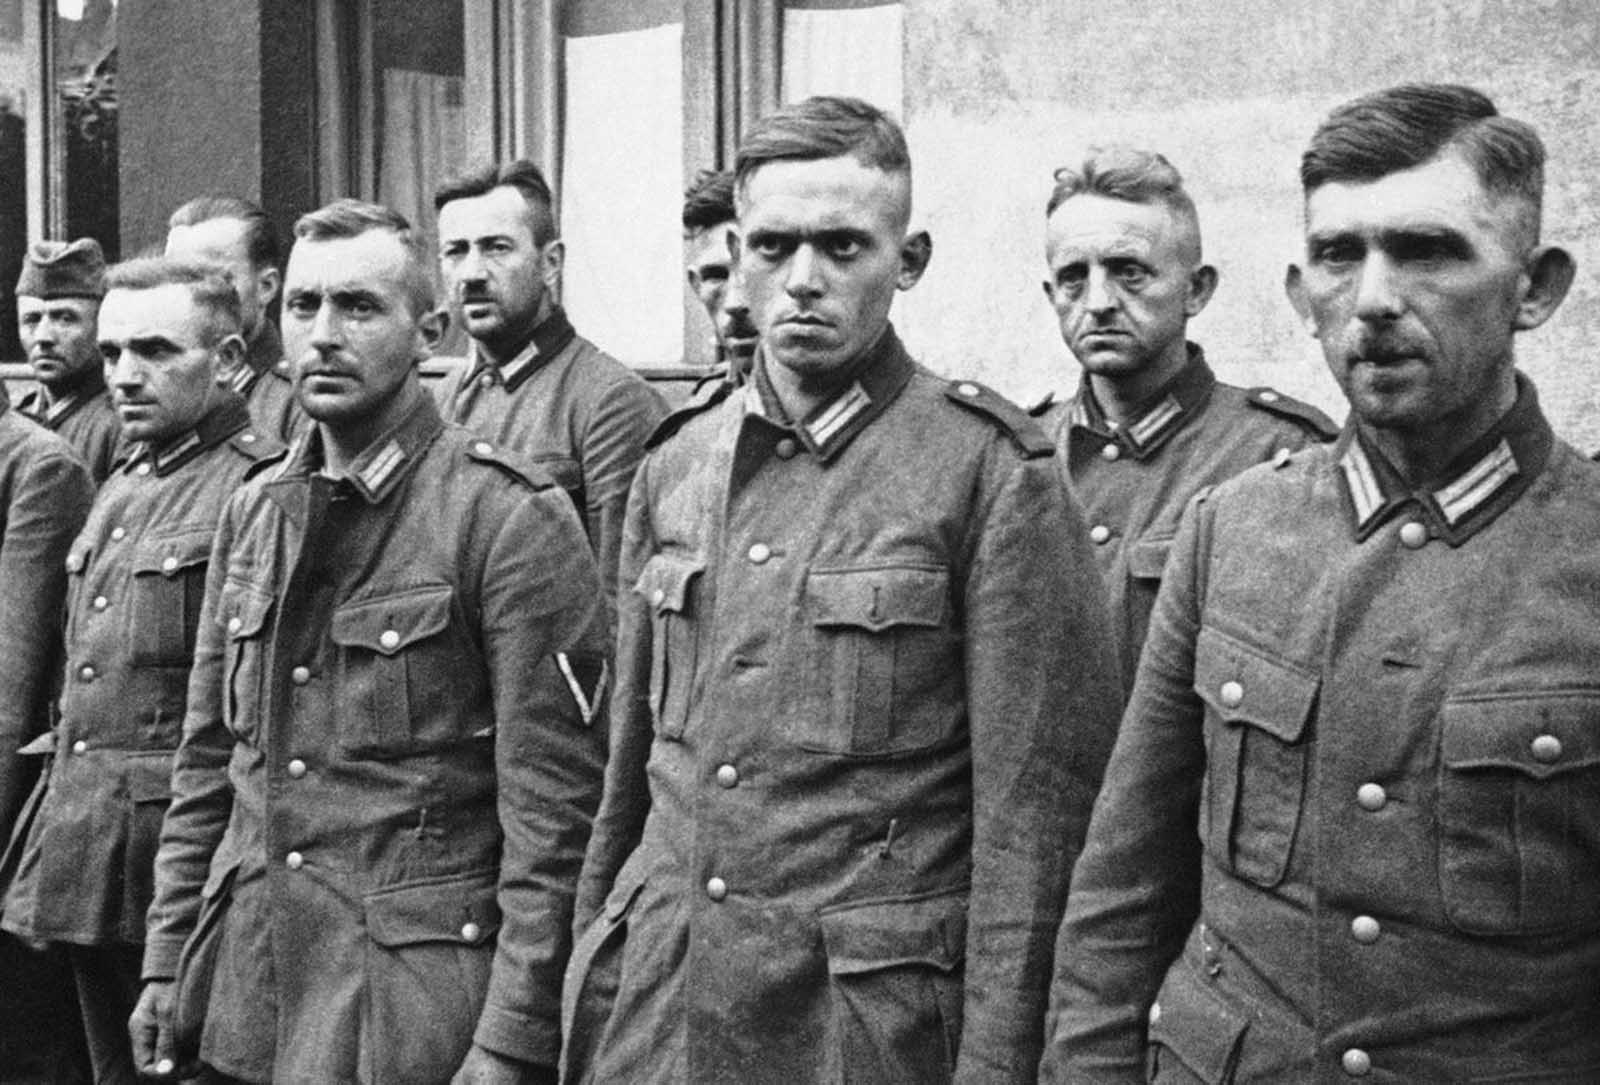 German soldiers, taken prisoner by the Polish army during the Nazi invasion, are shown while they were held captive in Warsaw, on October 2, 1939.